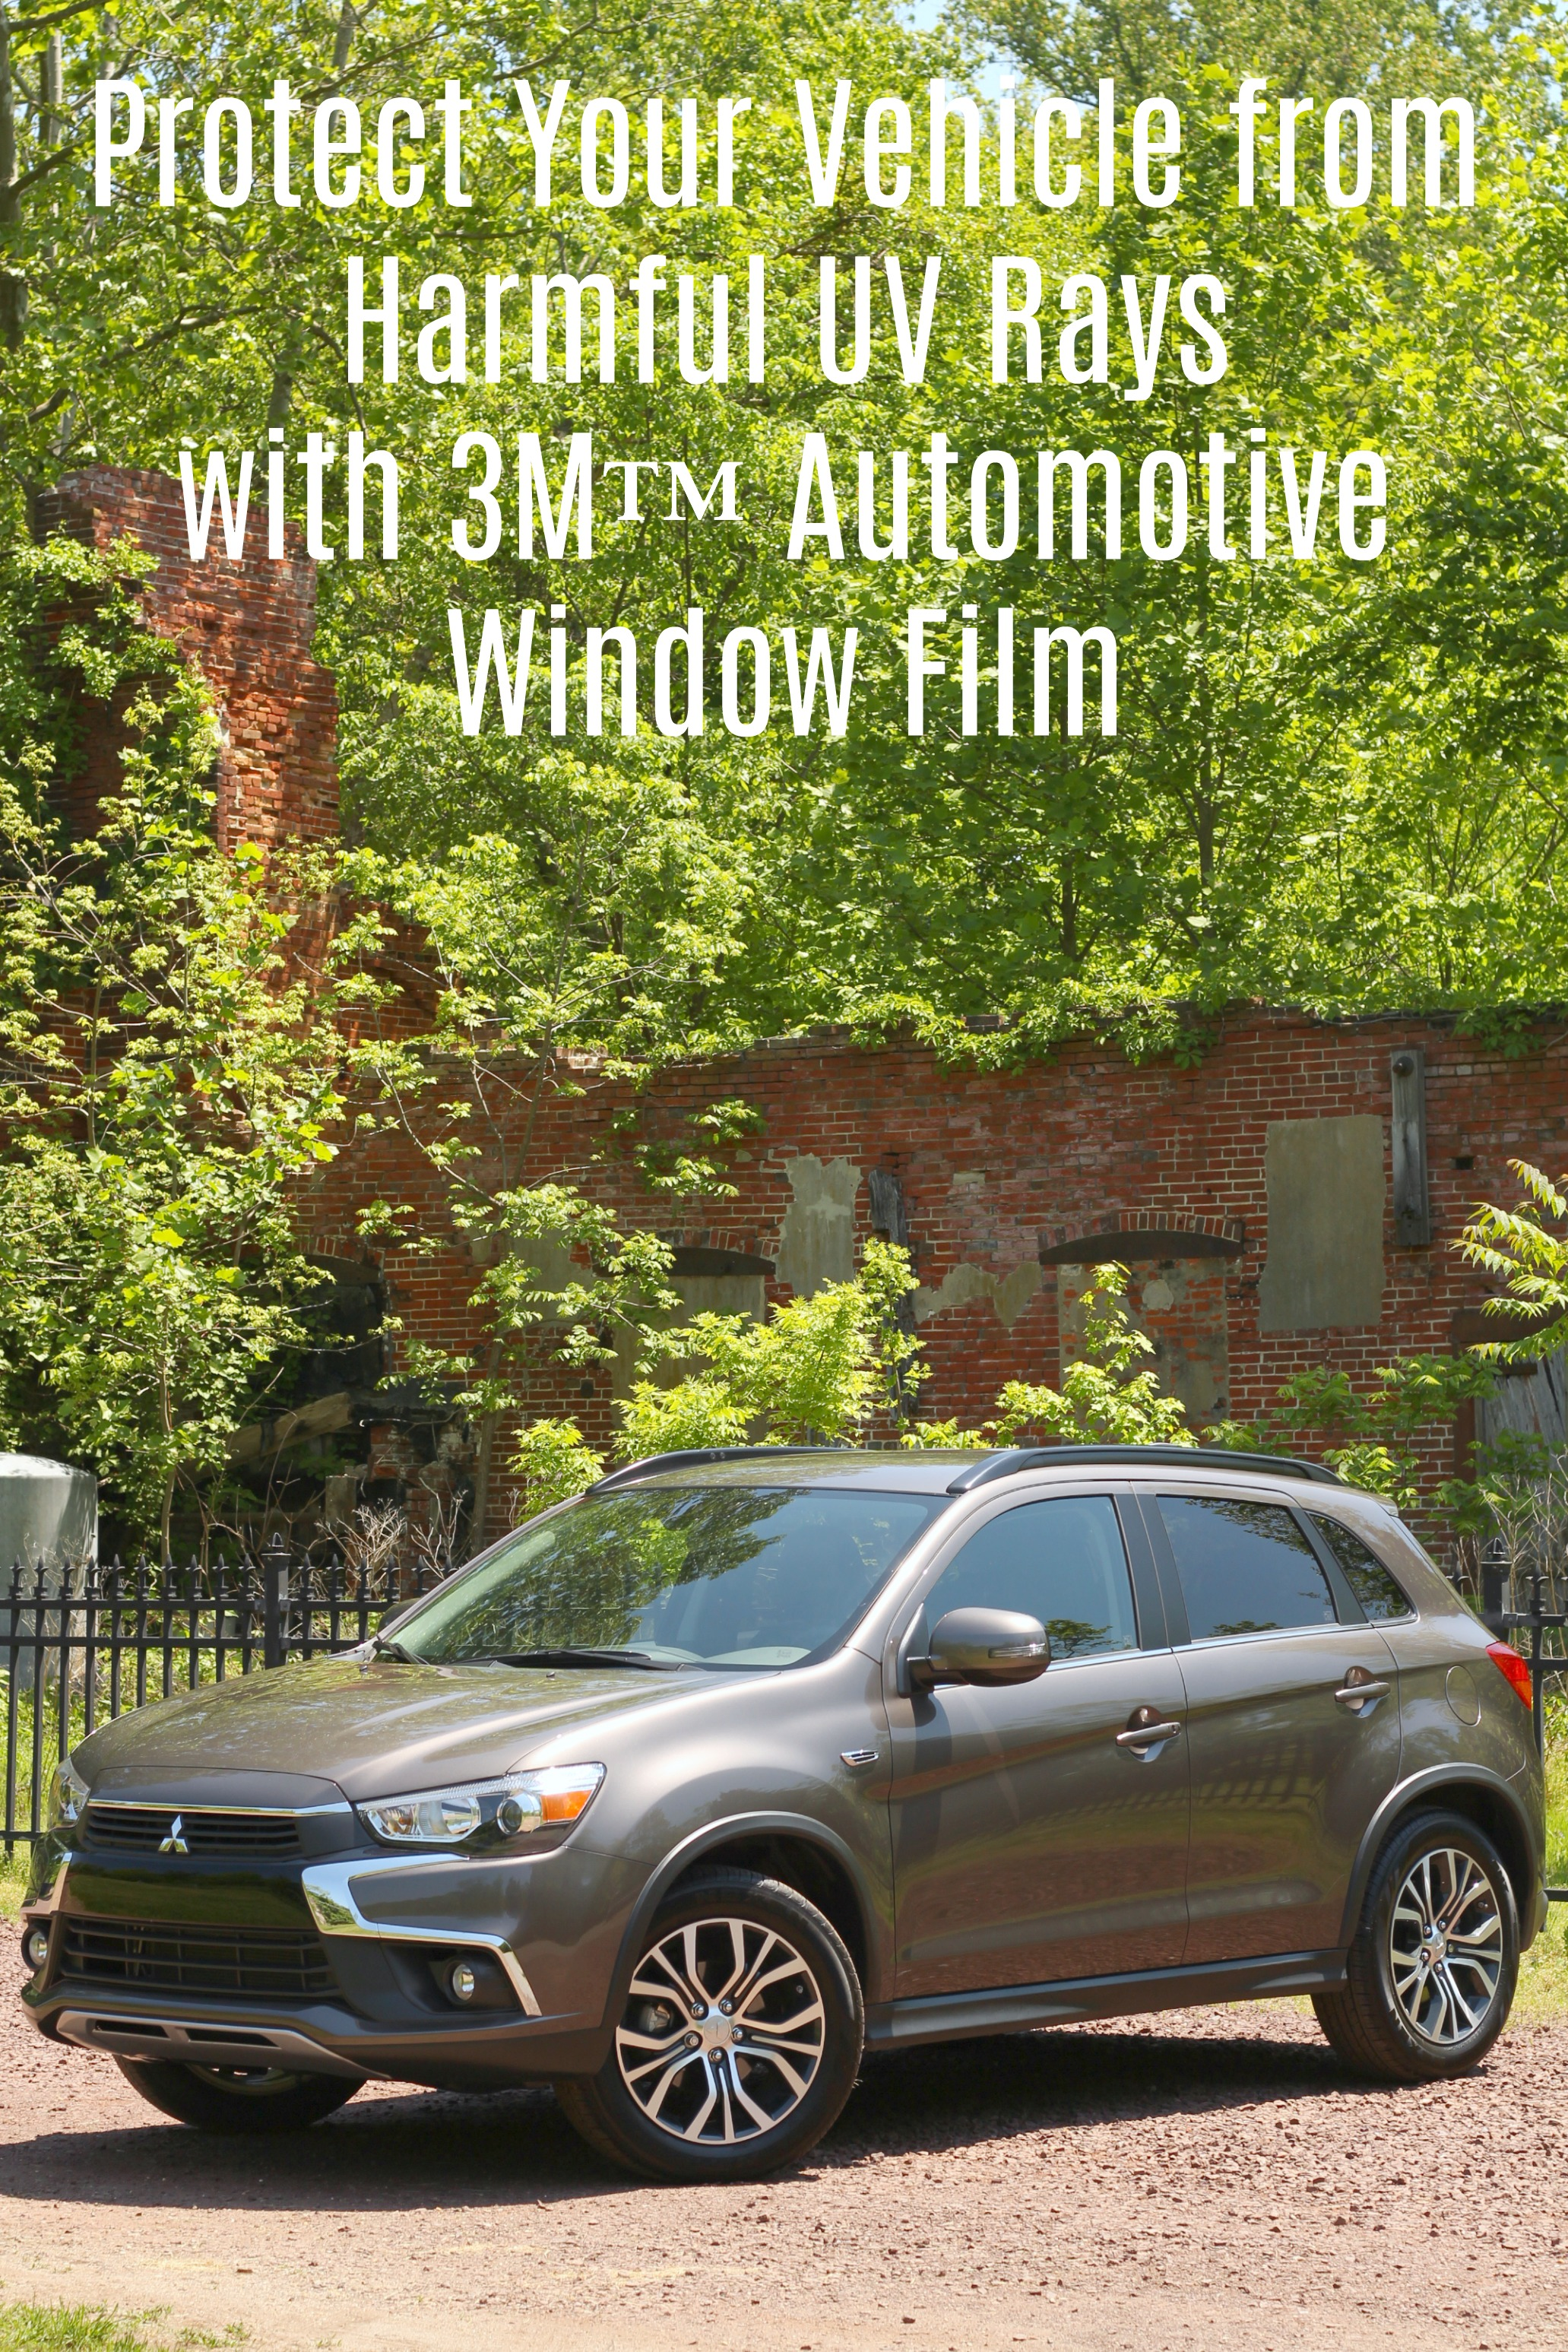 Protect Your Vehicle from Harmful UV Rays with 3M™ Automotive Window Film